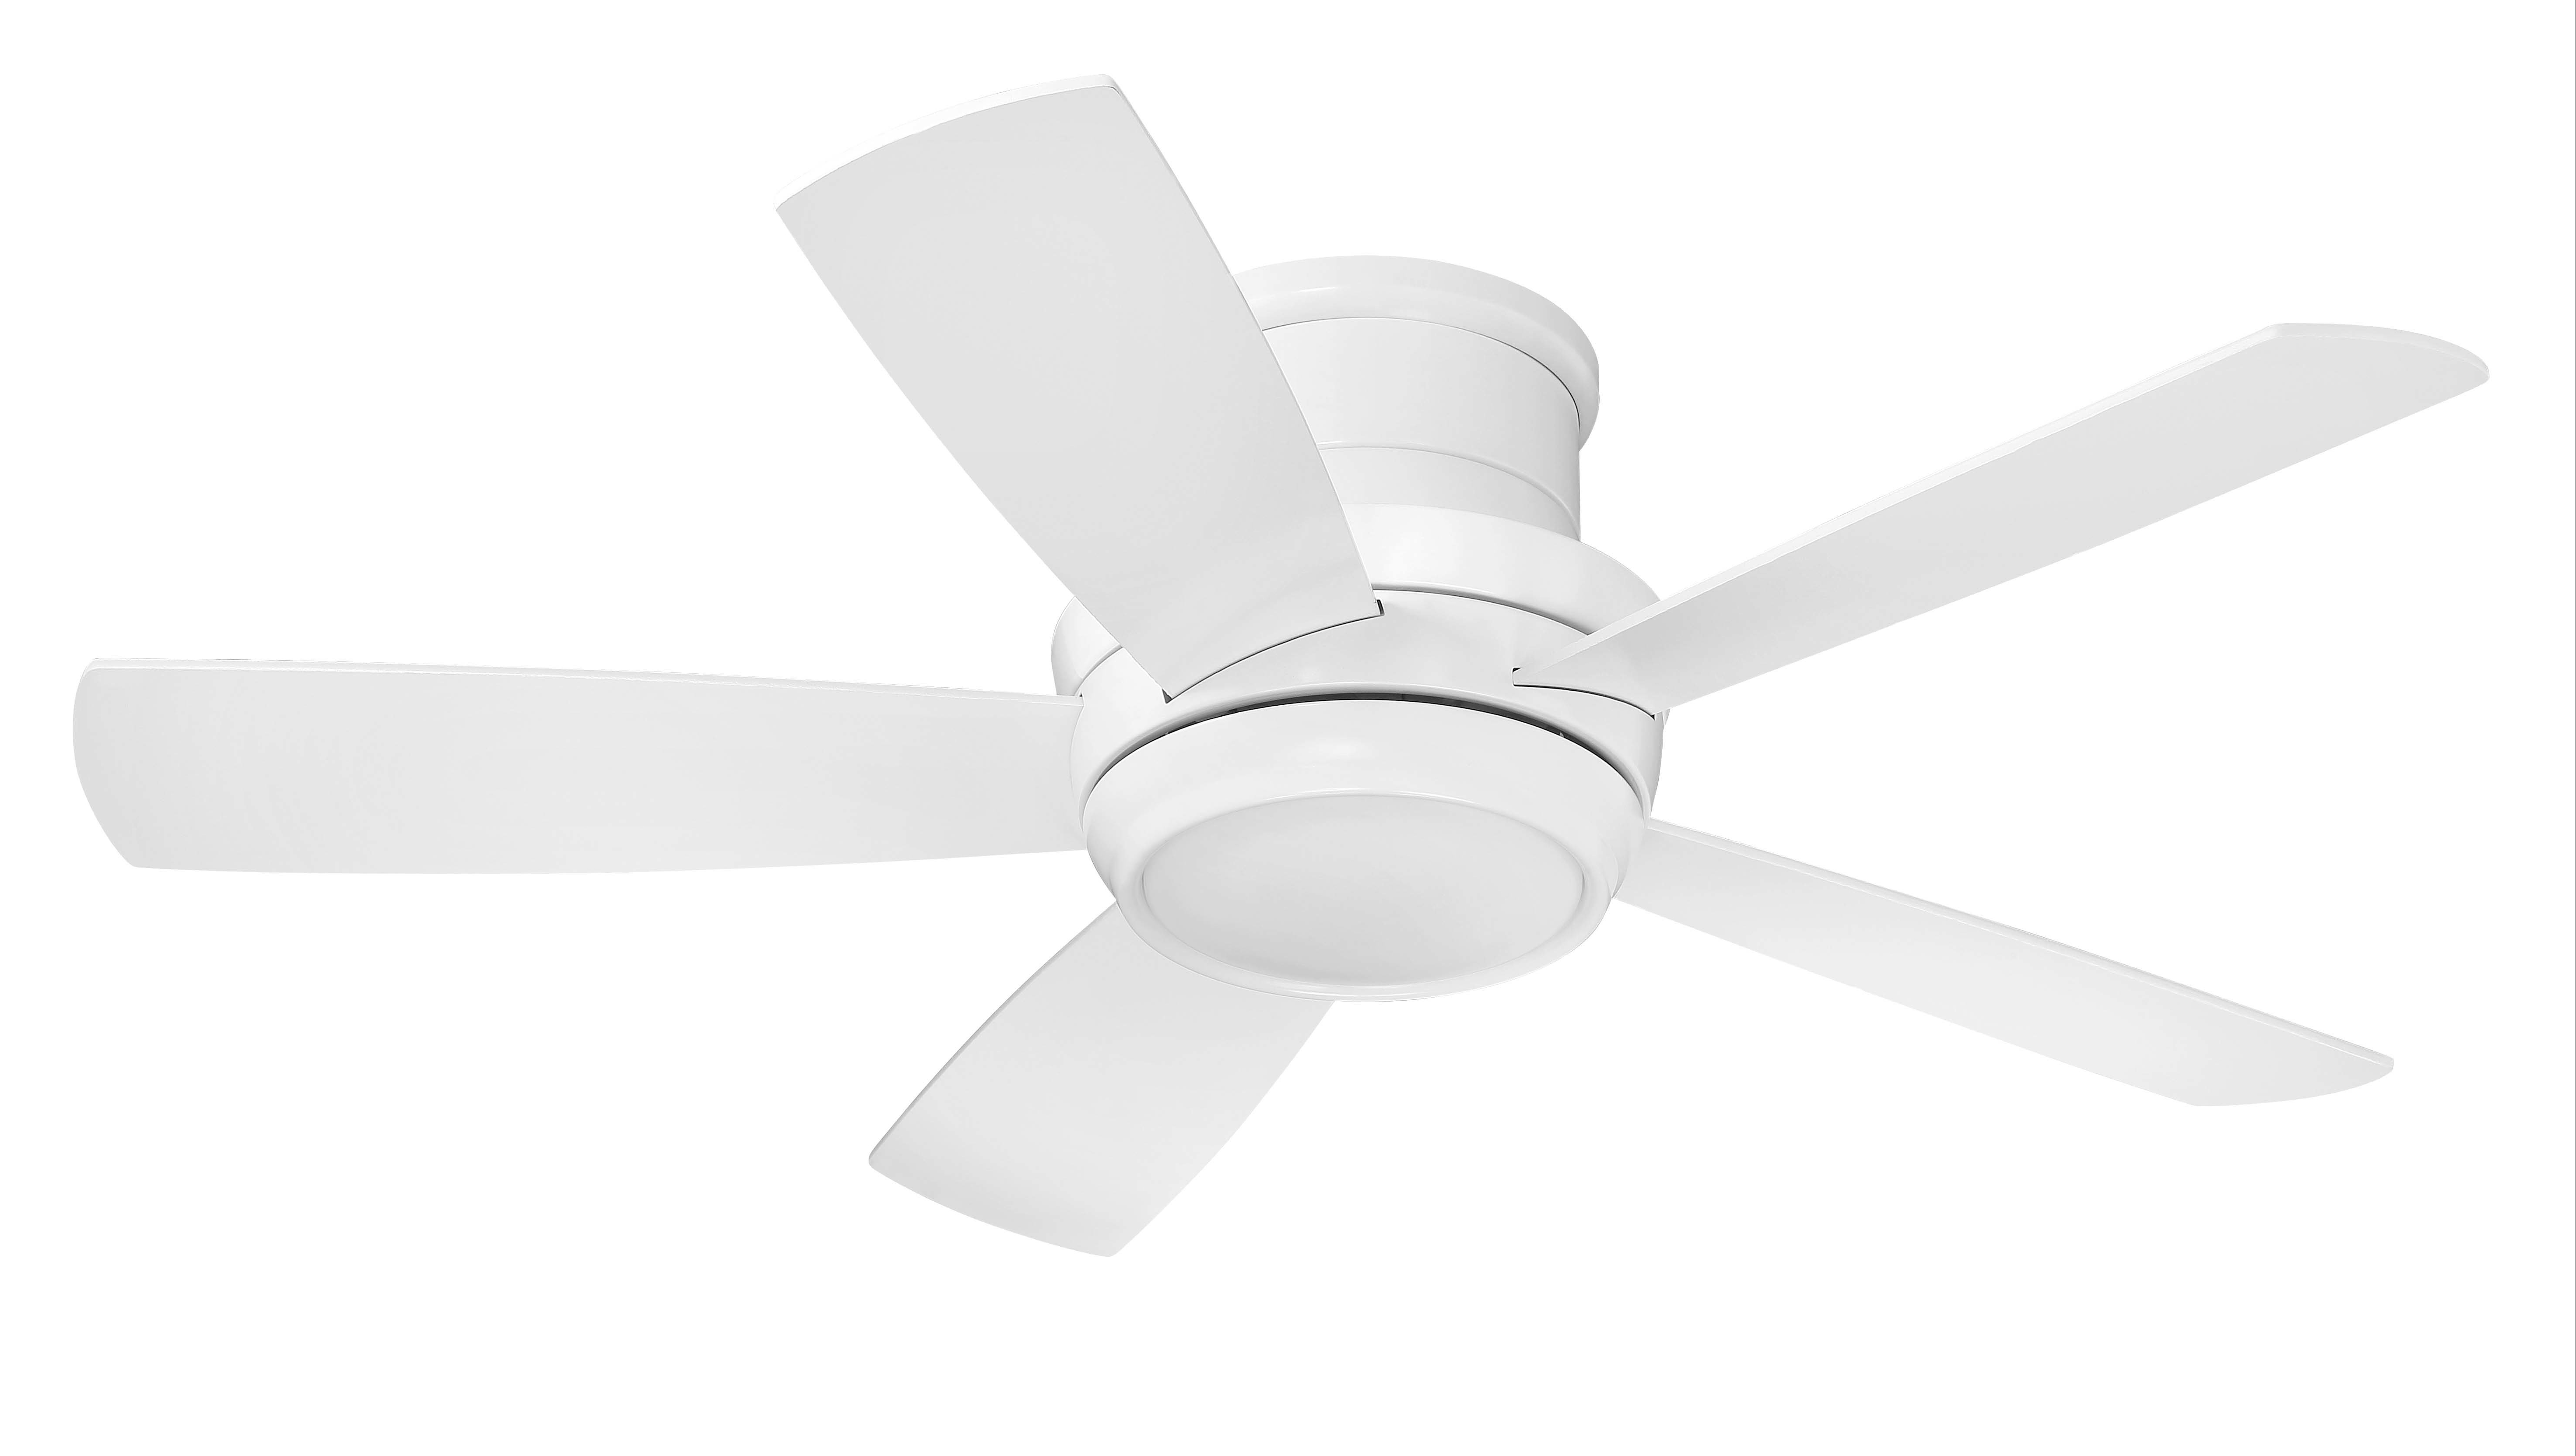 Creslow 5 Blade Ceiling Fans With 2020 Modern Latitude Run Ceiling Fans (View 8 of 20)